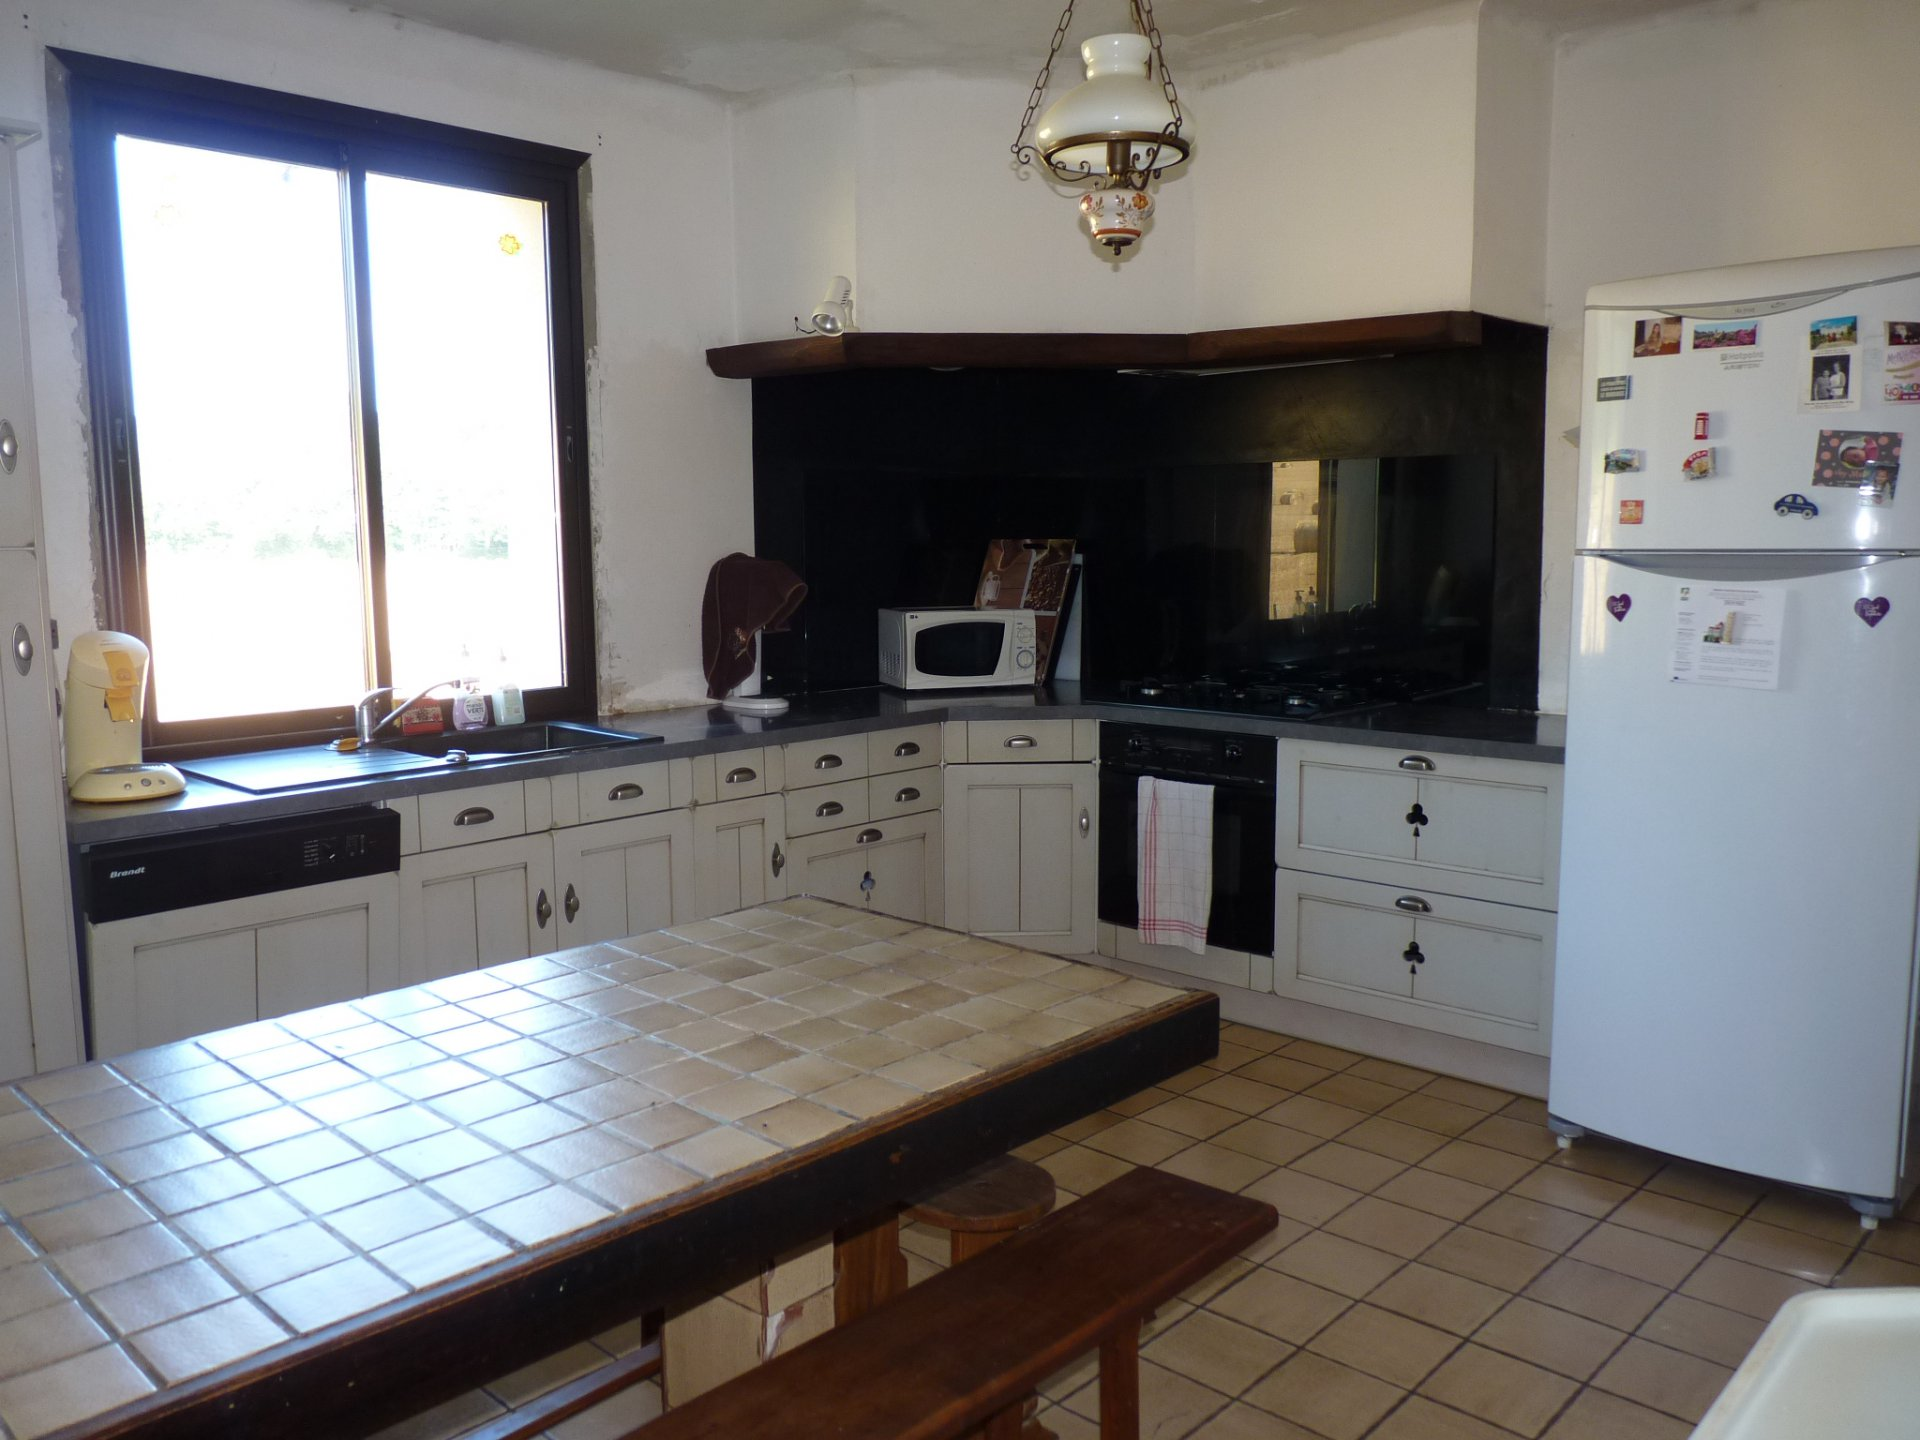 10 minutes from Aurignac, house of 140 m² on full basement